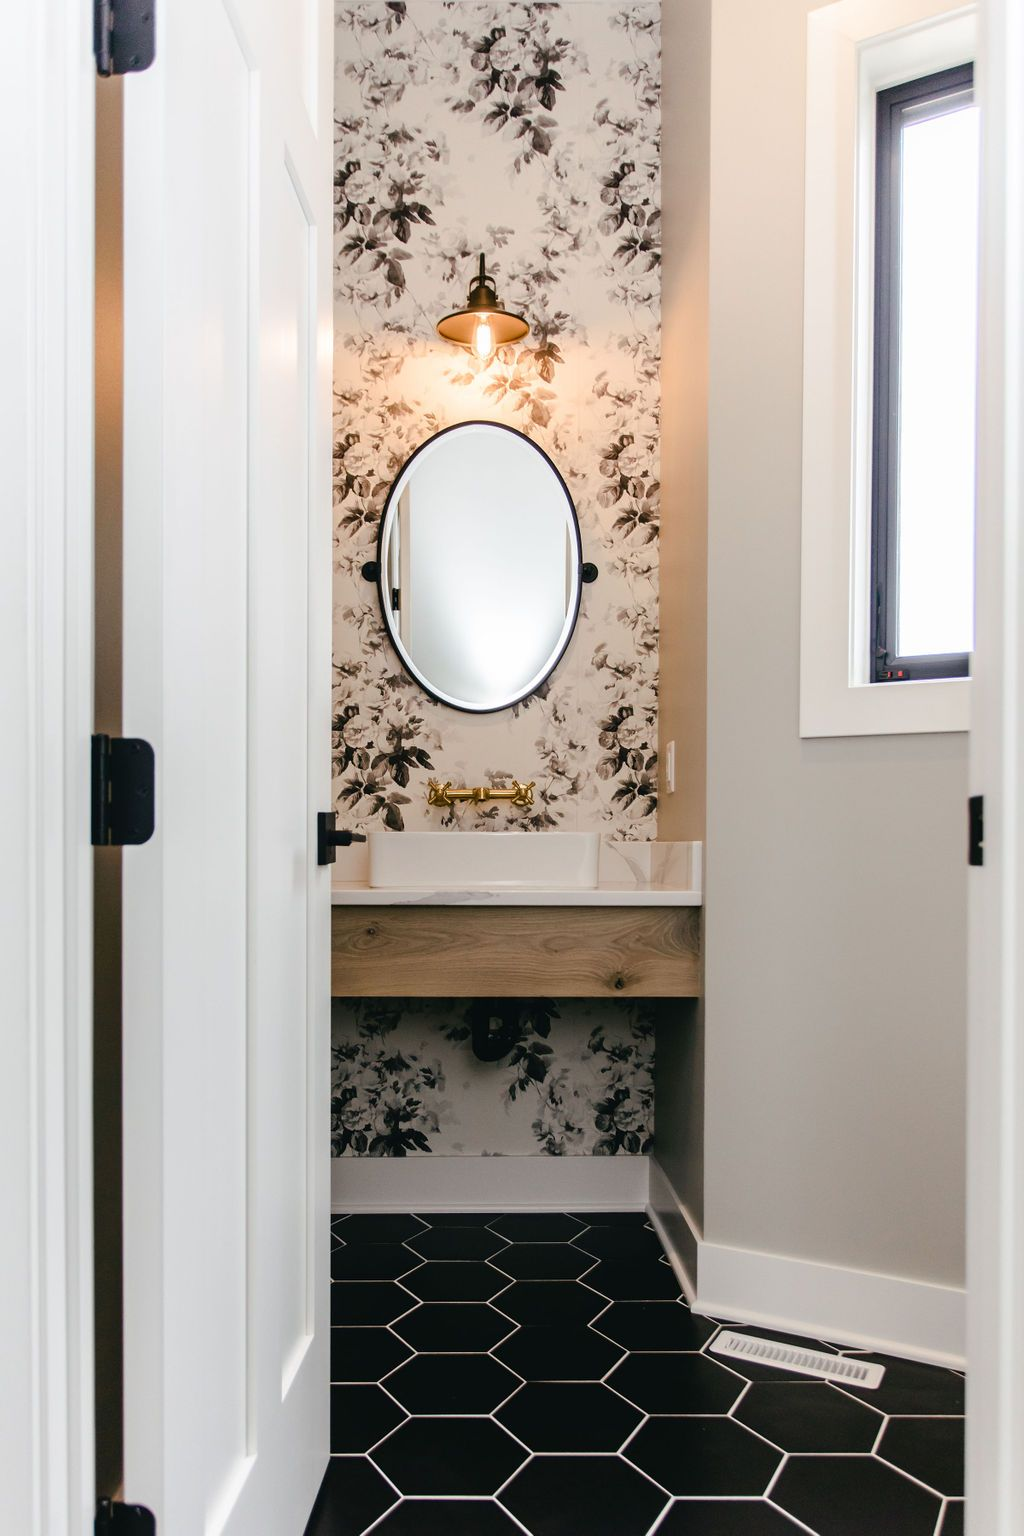 Matte Black Oval Mirror | Bathroom wallpaper, Cottage ...